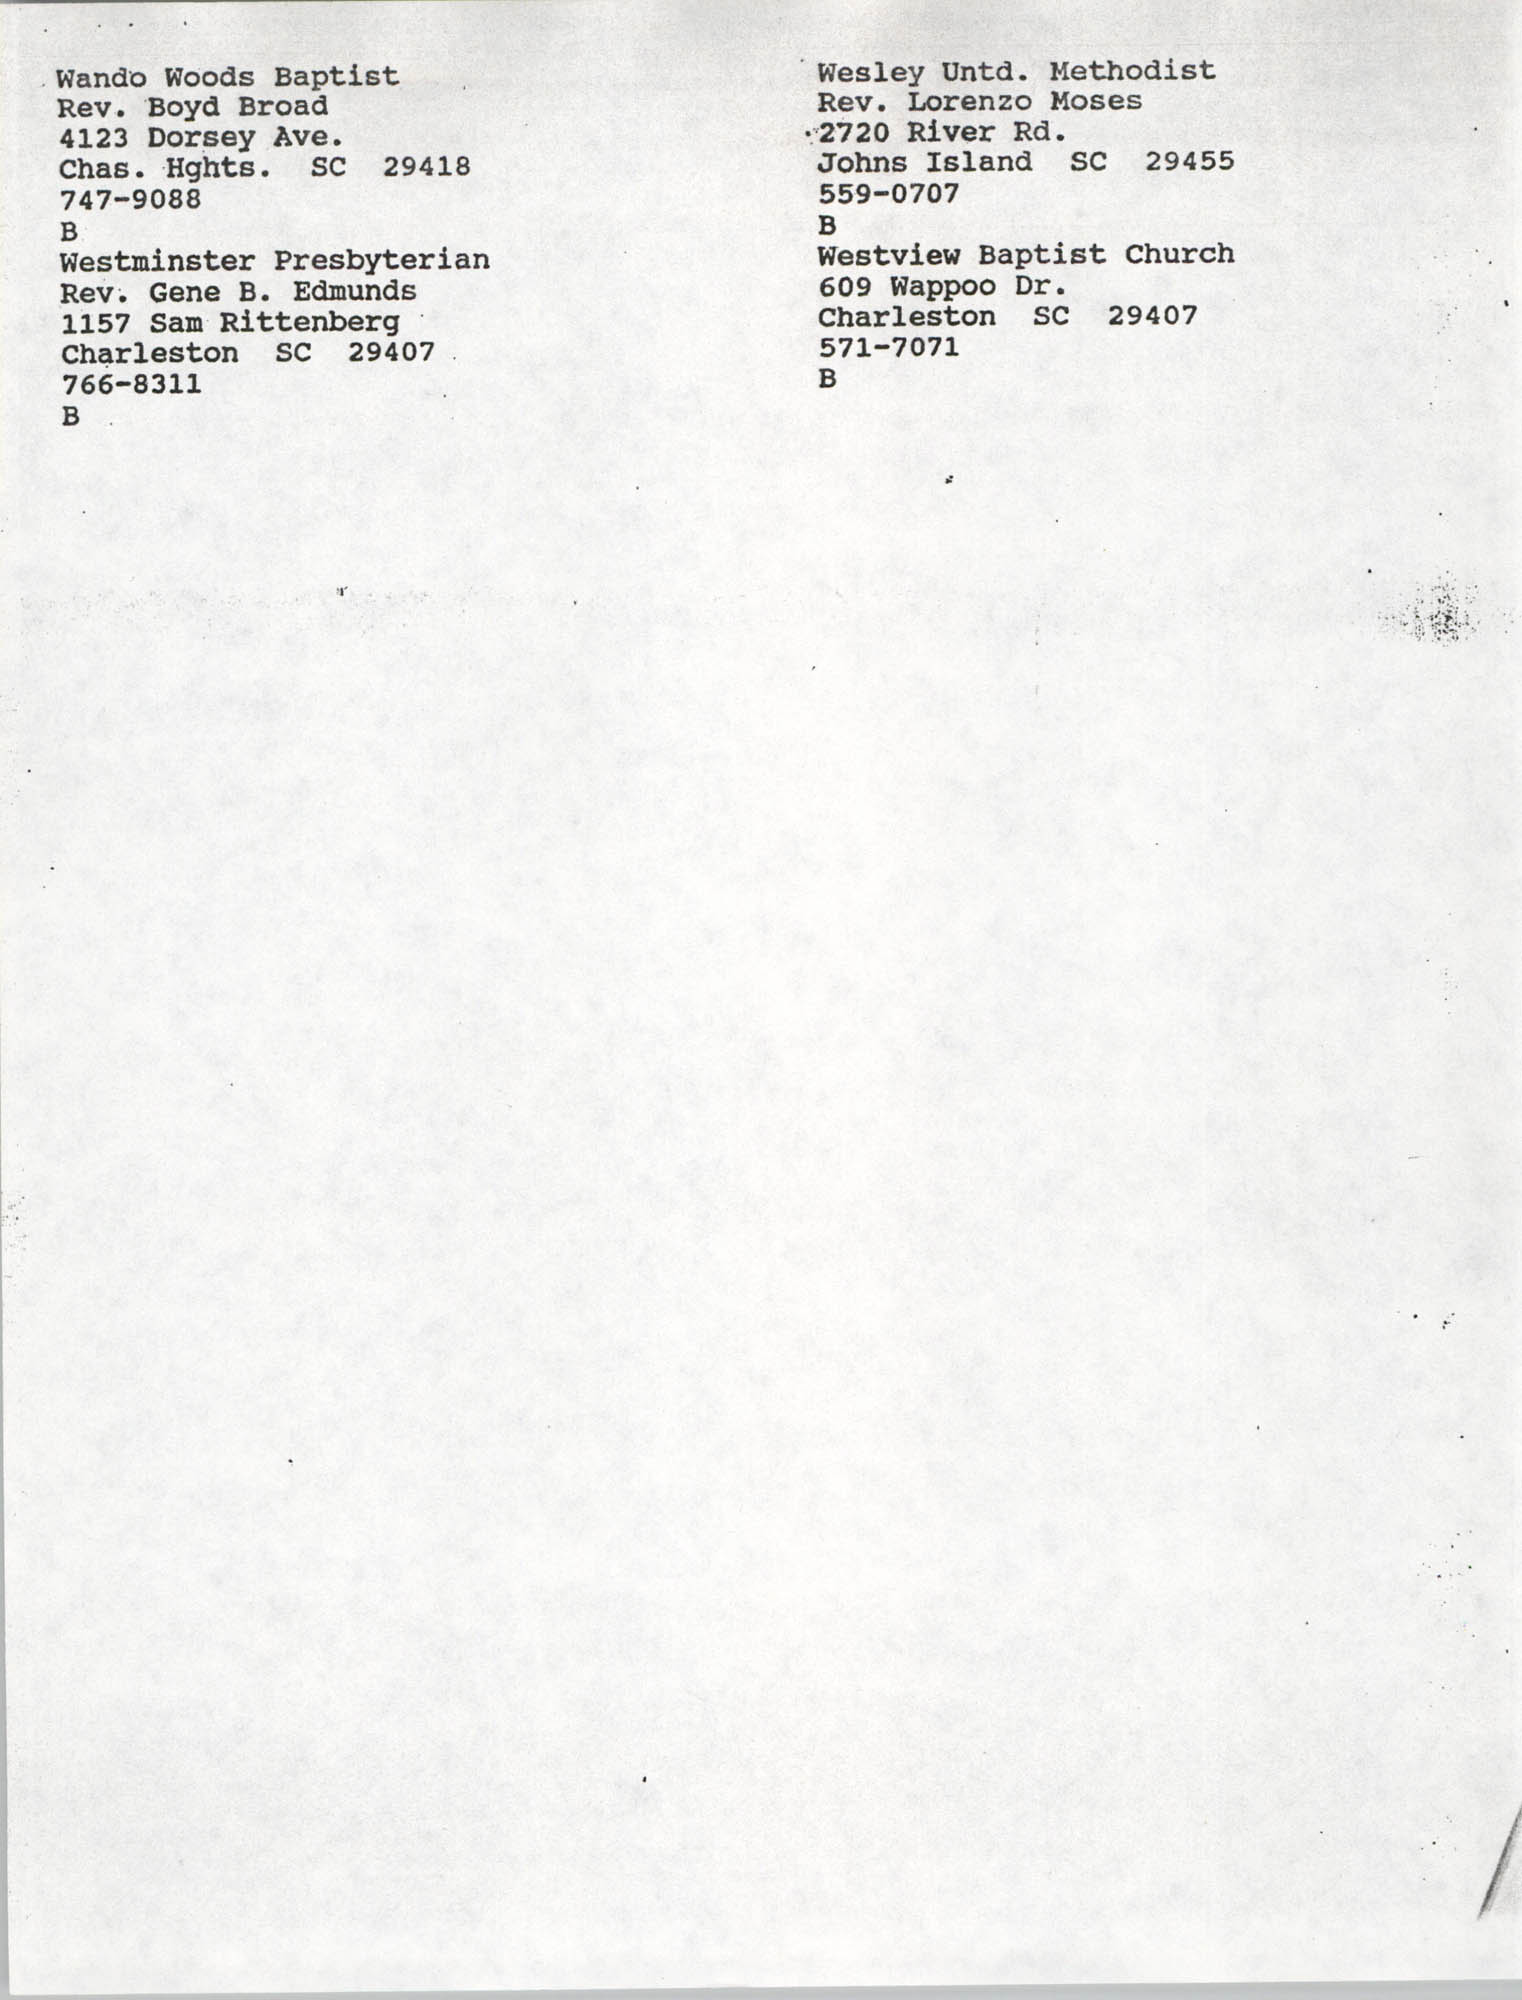 Church Contact List, Charleston Chapter of the NAACP, Page 15